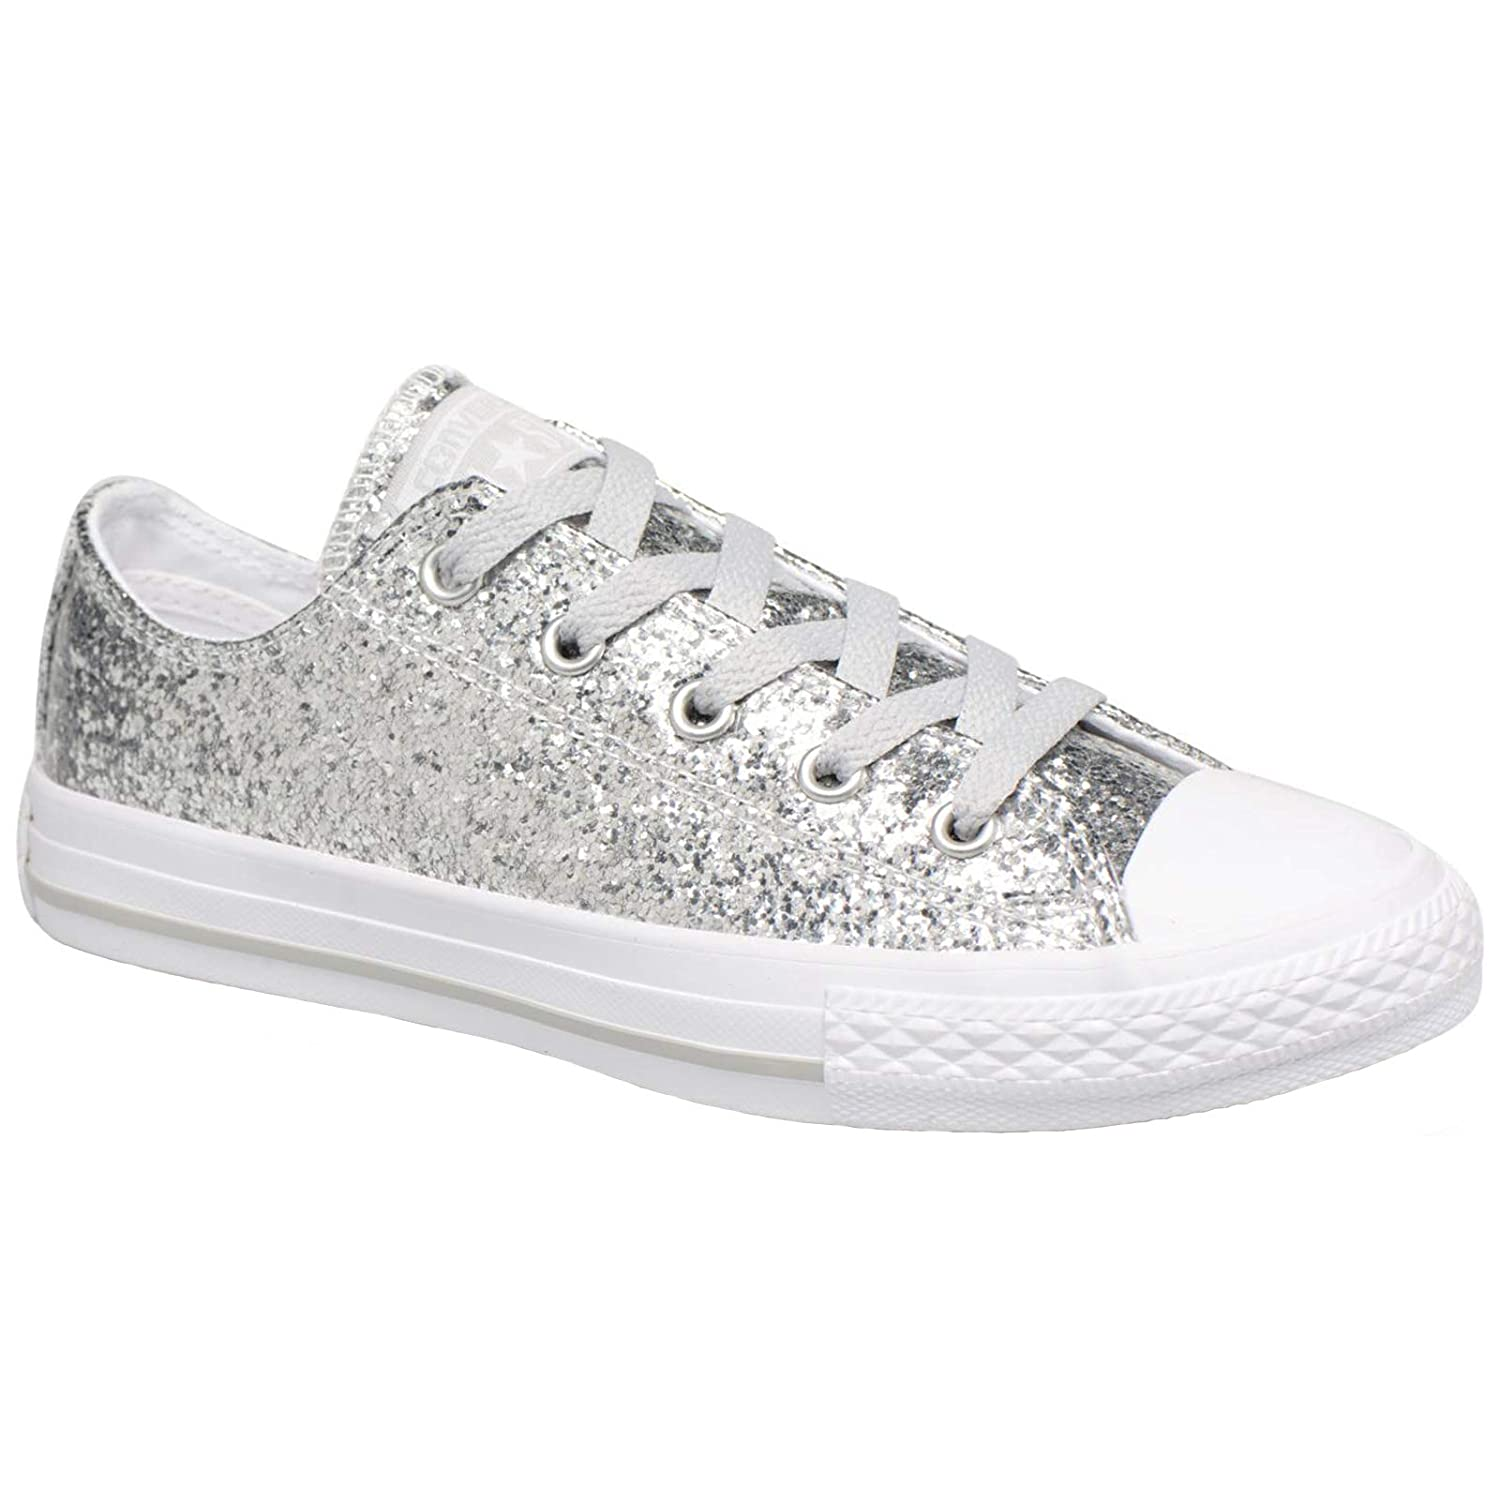 Converse mode Ctas Baskets Core Hi, Baskets mode 14119 mixte adulte dd9fb73 - piero.space